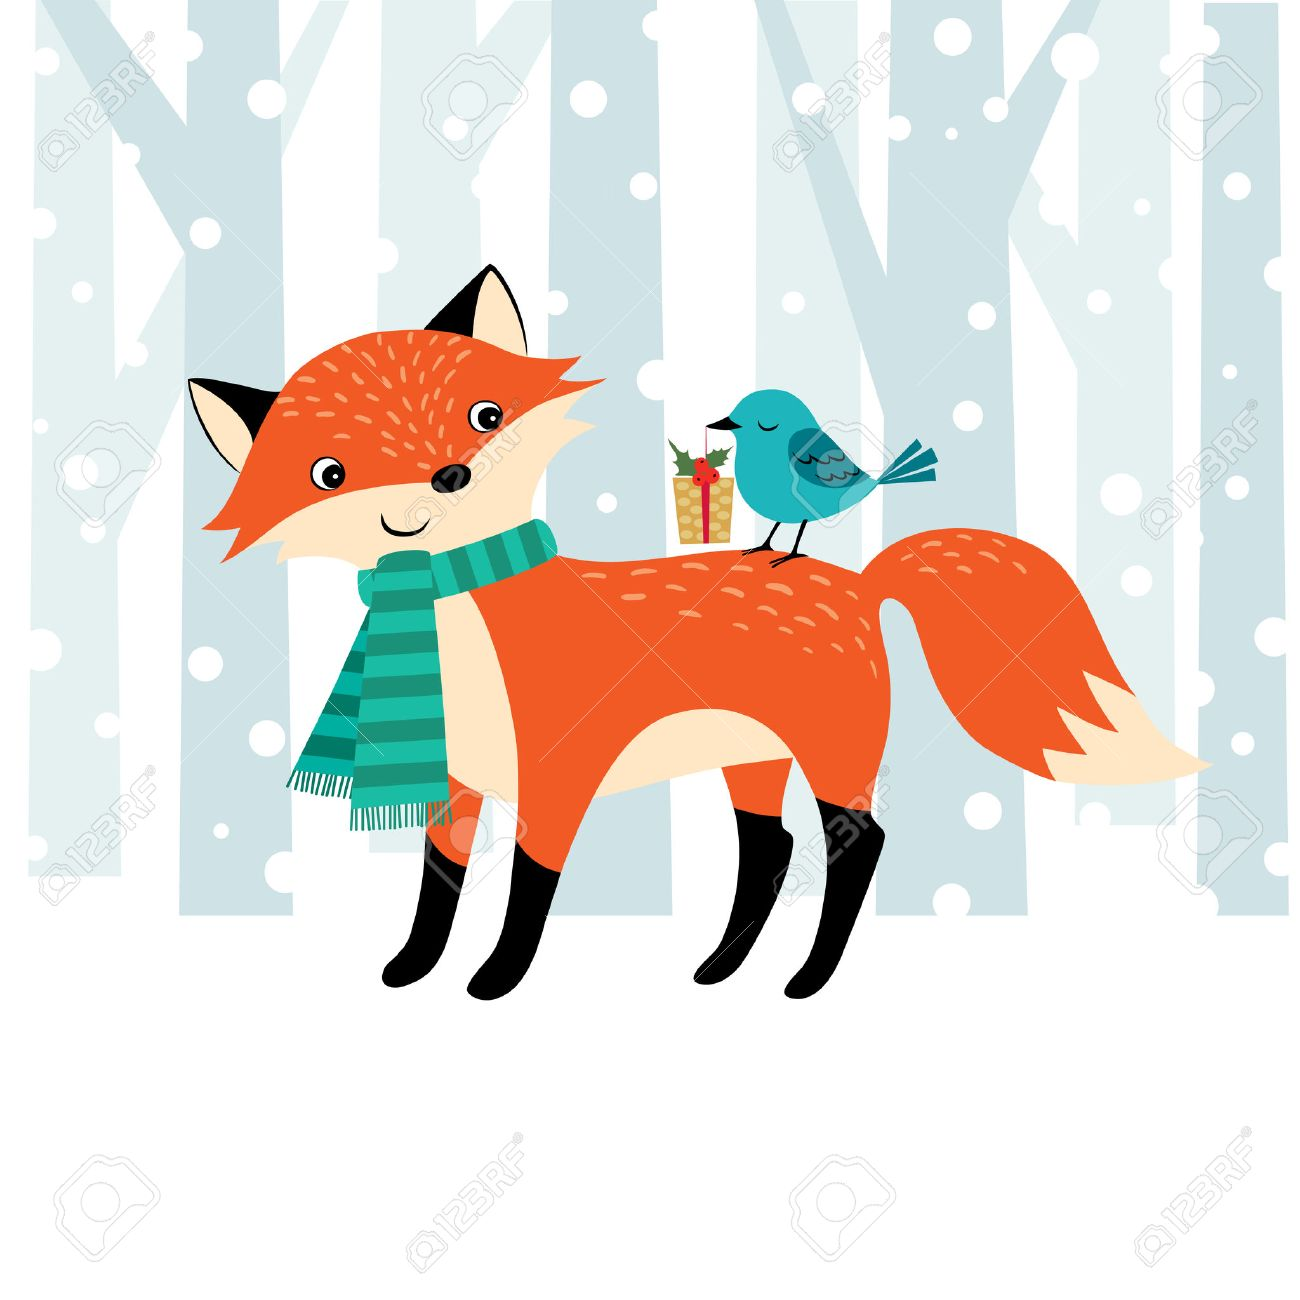 Cute Christmas illustration with place for your text. - 31060972